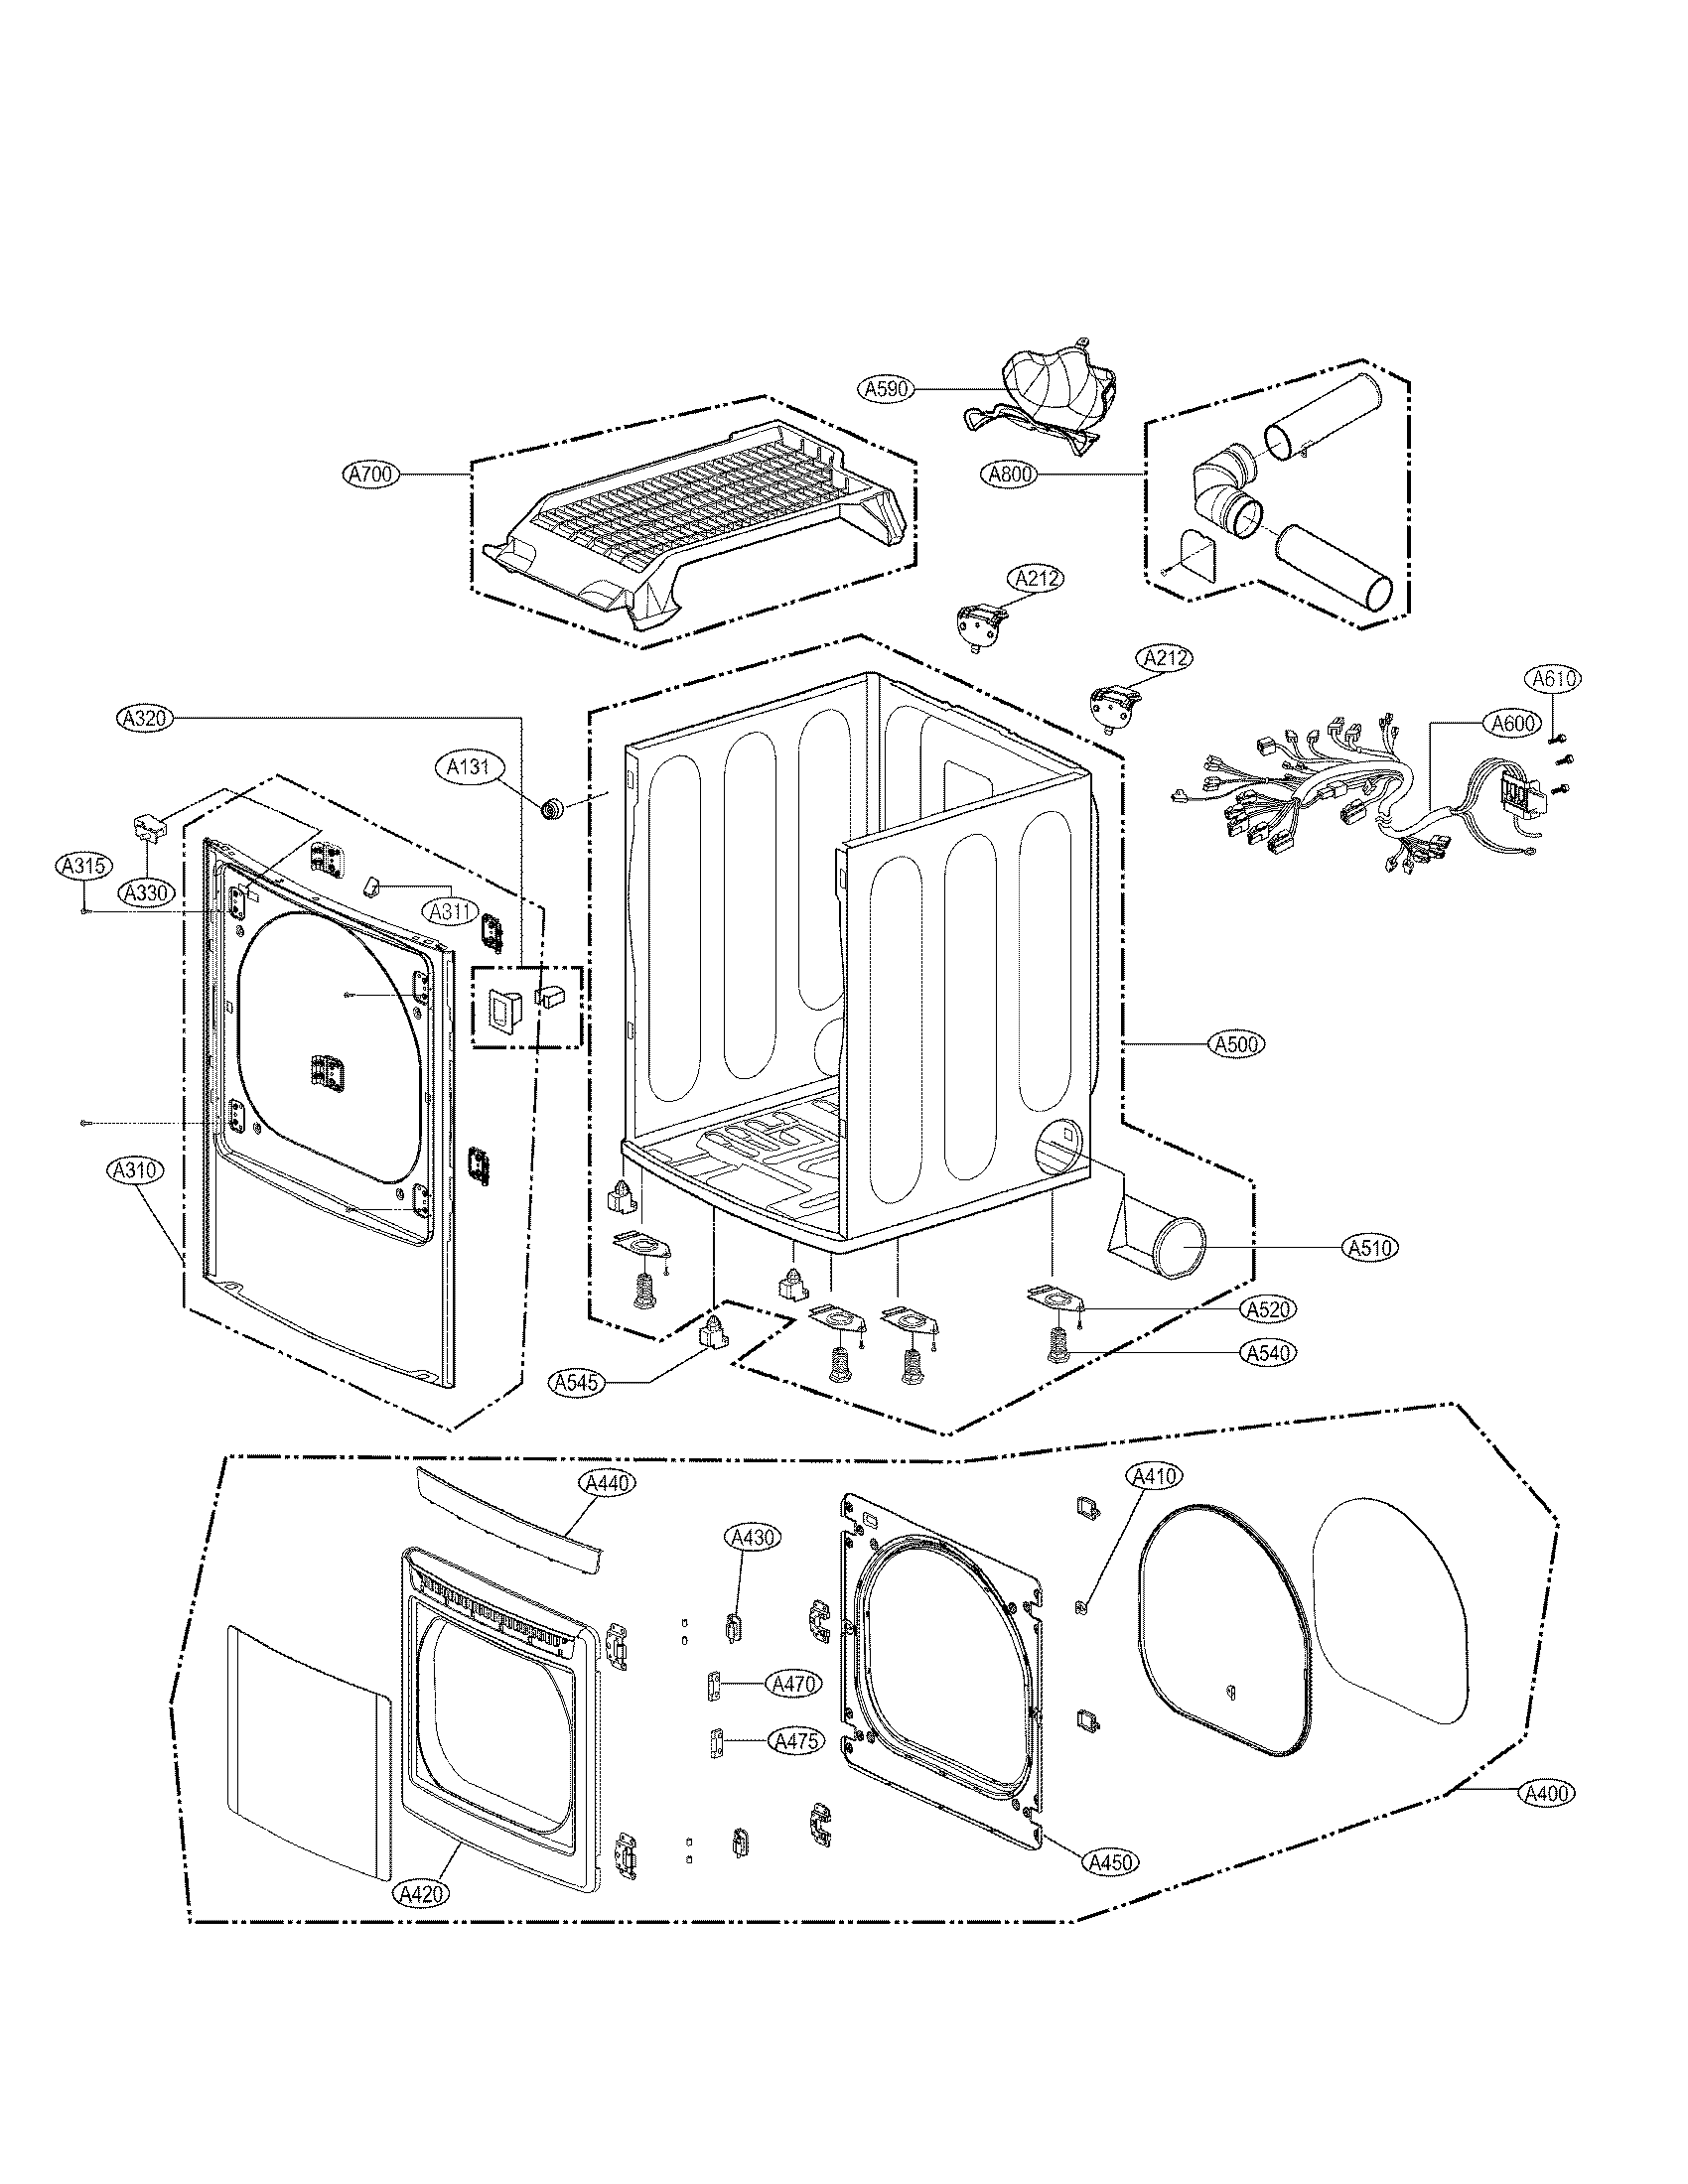 Lg model DLEX5170W residential dryer genuine parts